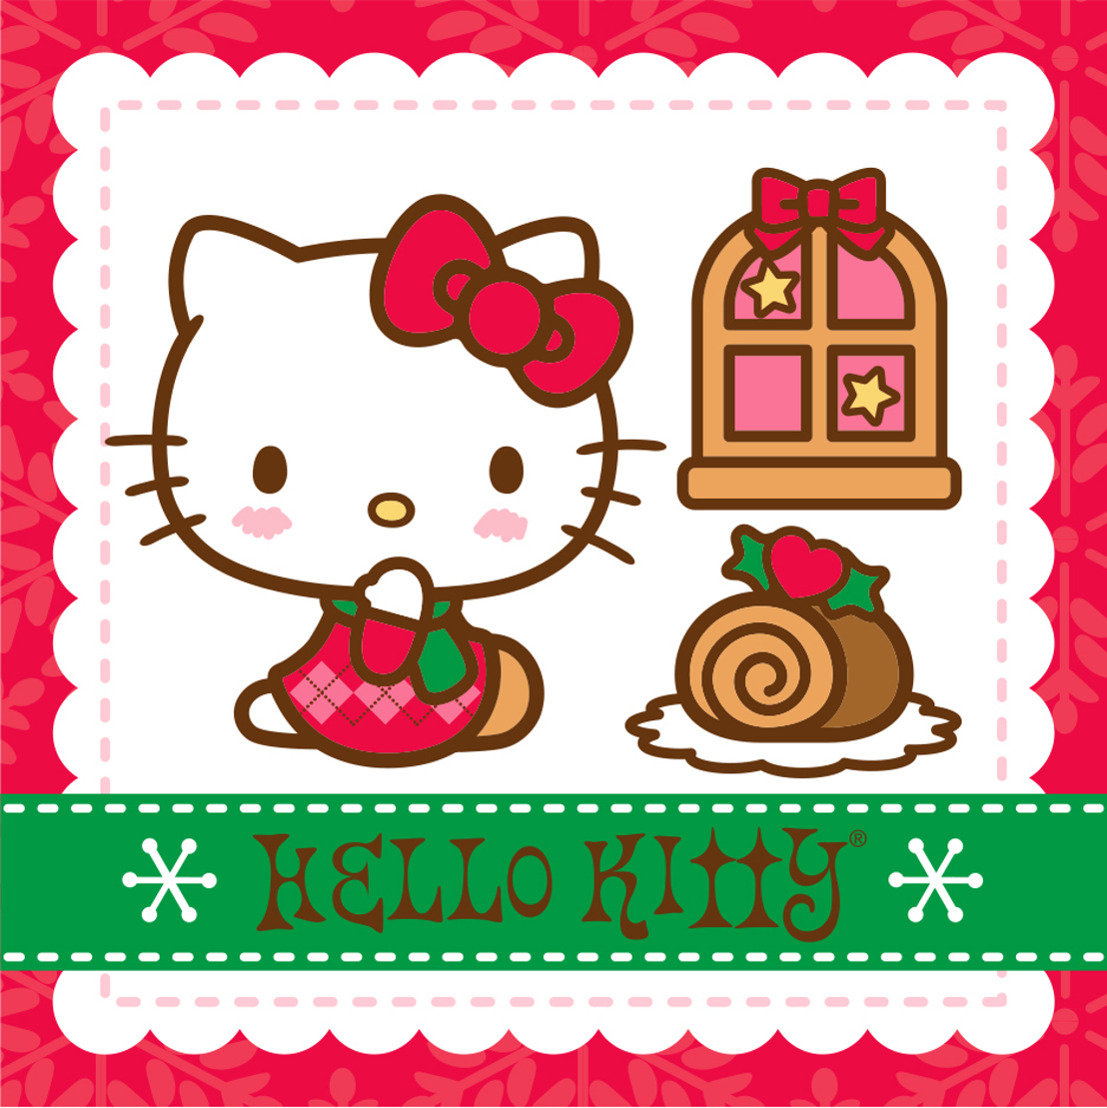 ¡Celebra las fiestas decembrinas con Hello Kitty!